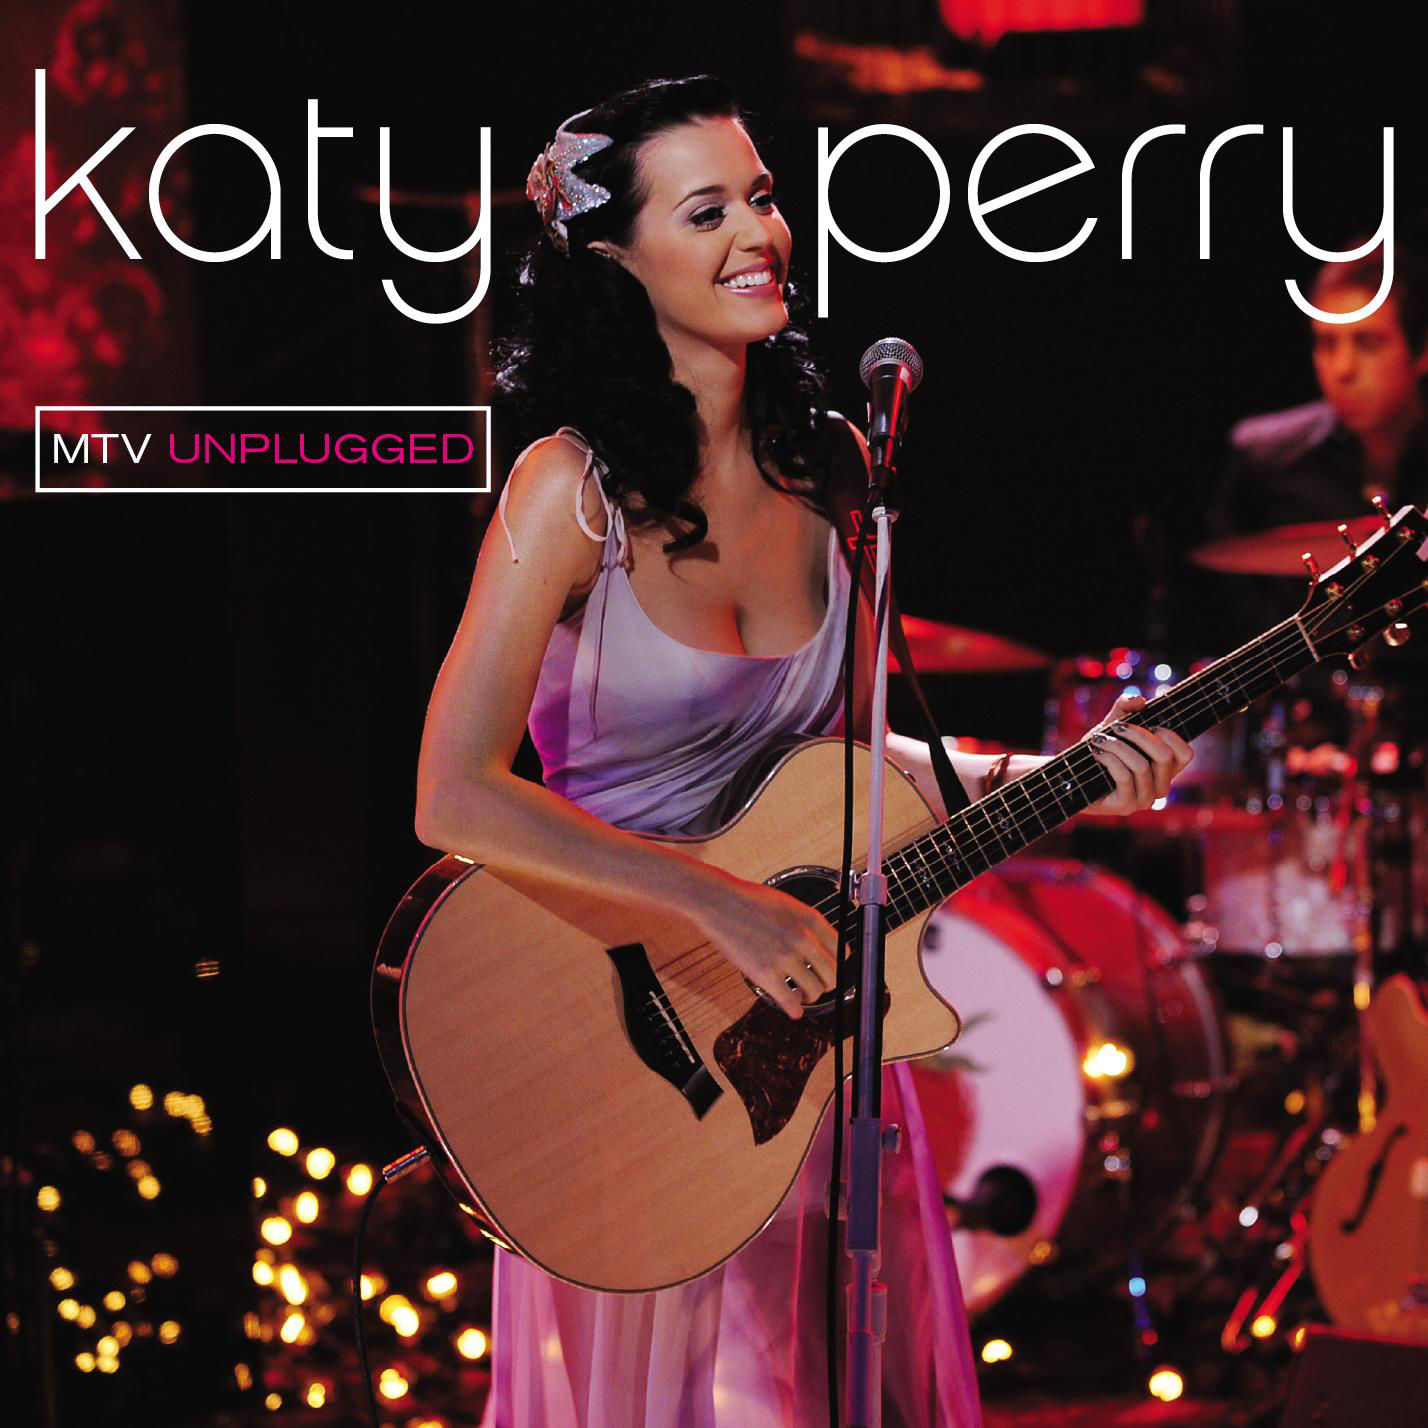 Torrent katy perry discography